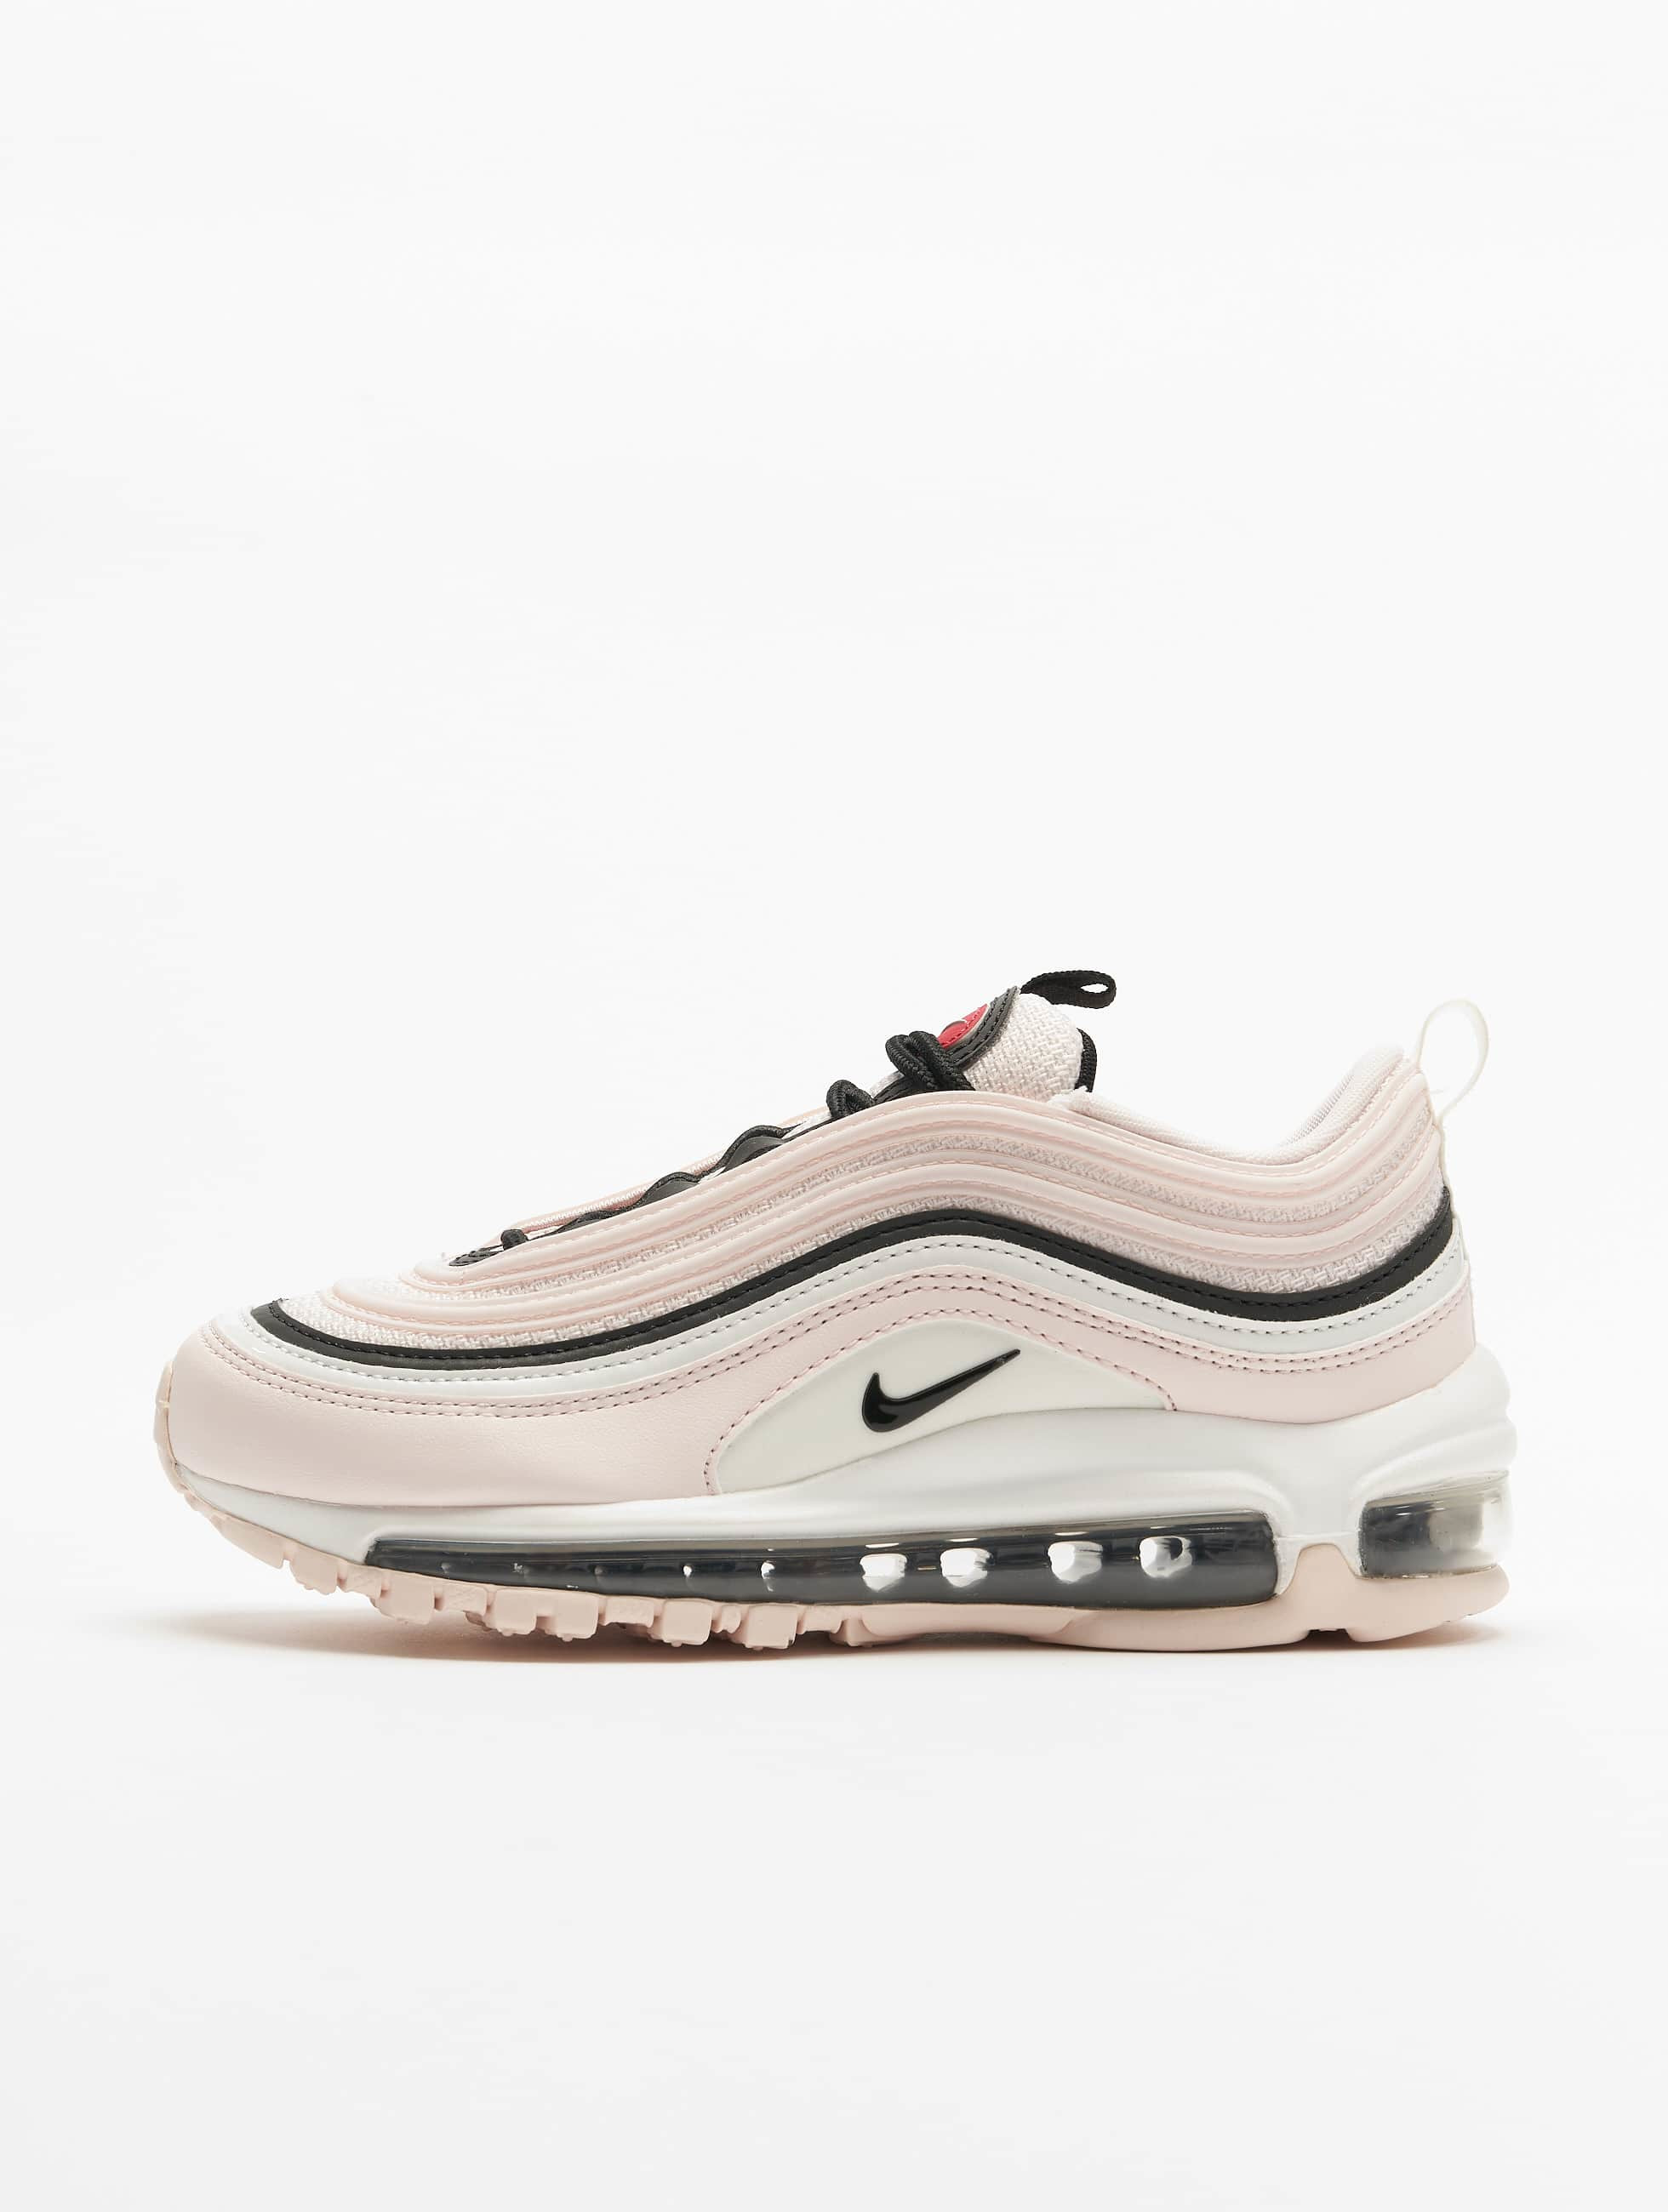 Nike Air Max 97 Sneakers Light Soft PinkBlackSummit White Pink2